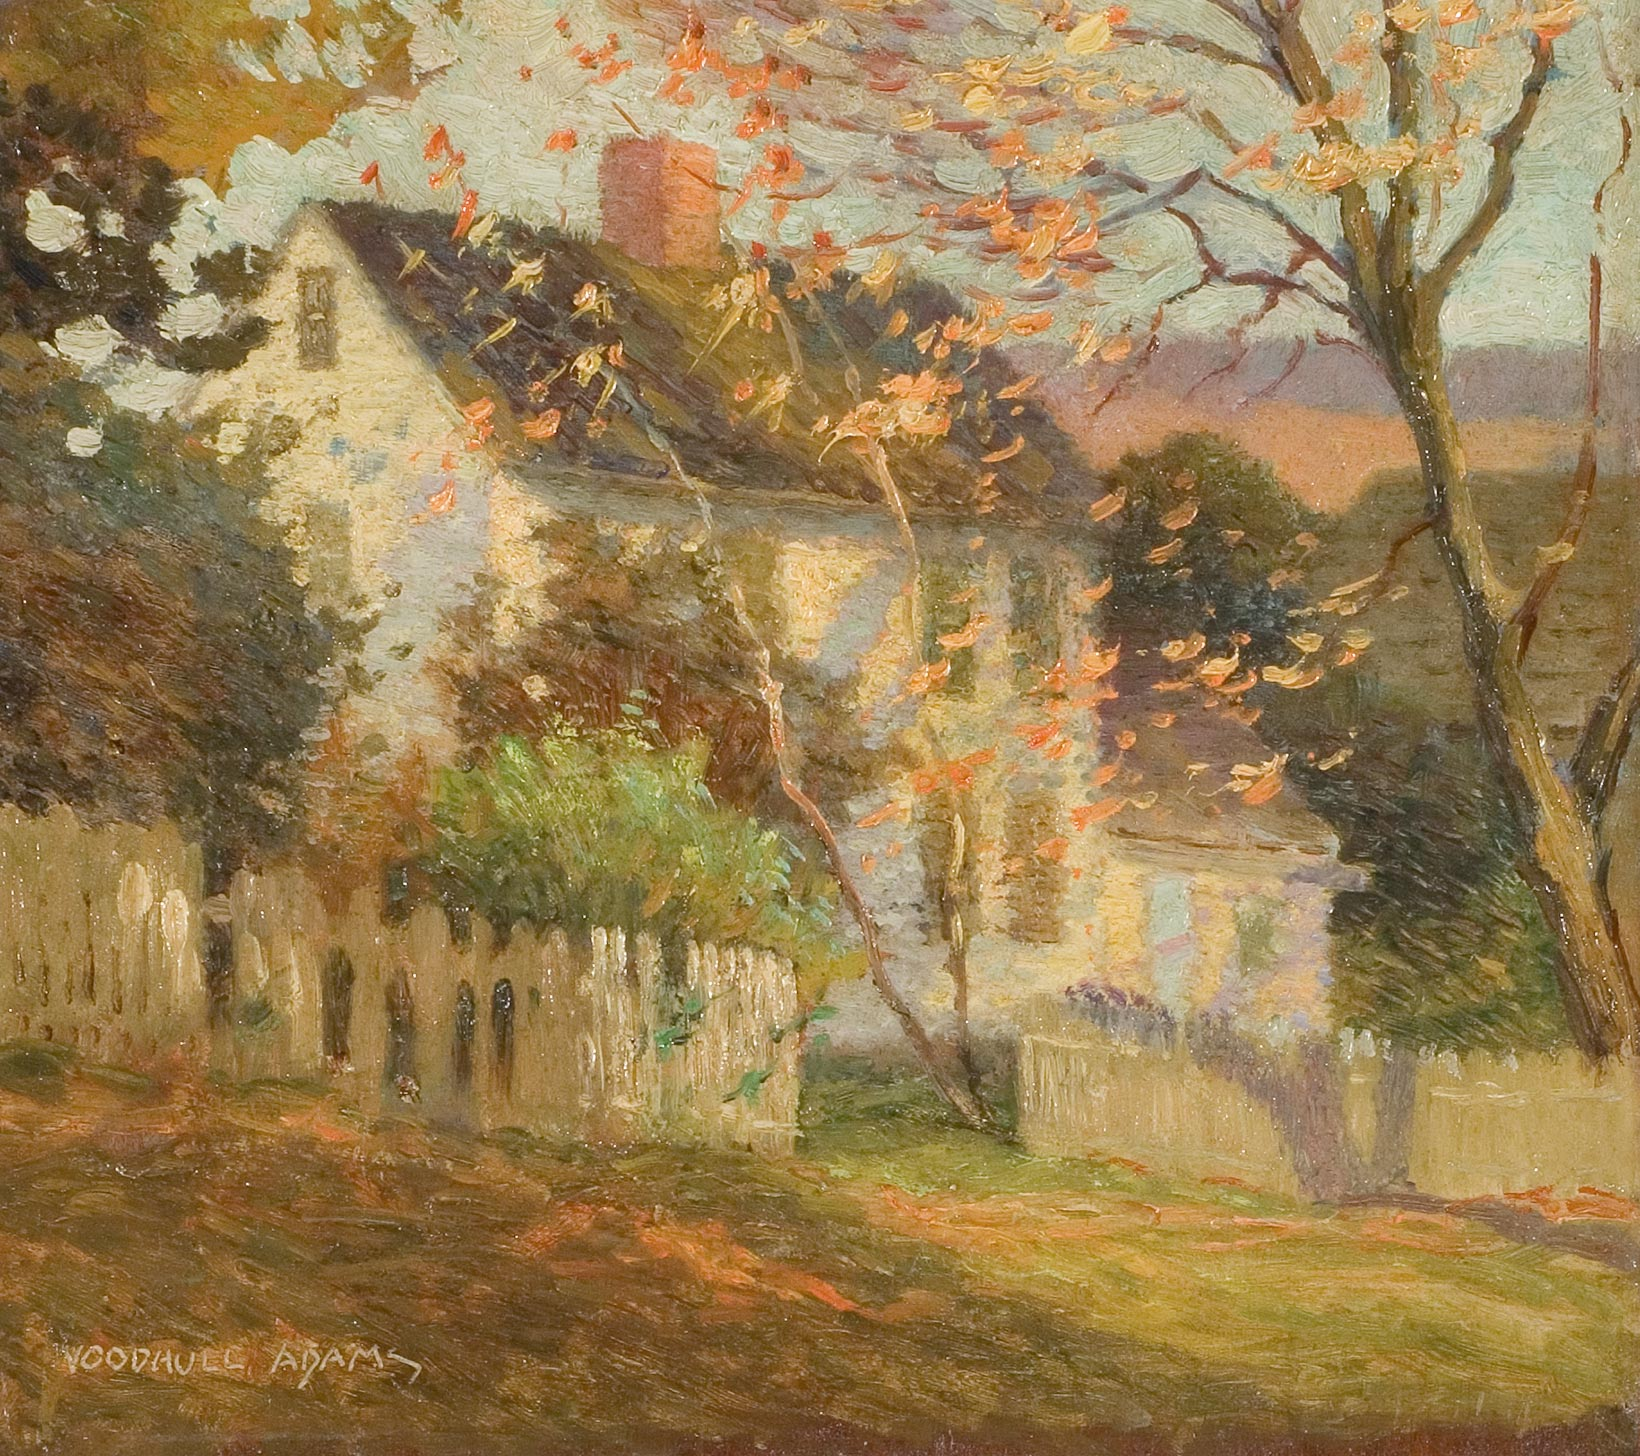 White Cottage In Autumn Panel Painting By Woodhull Adams